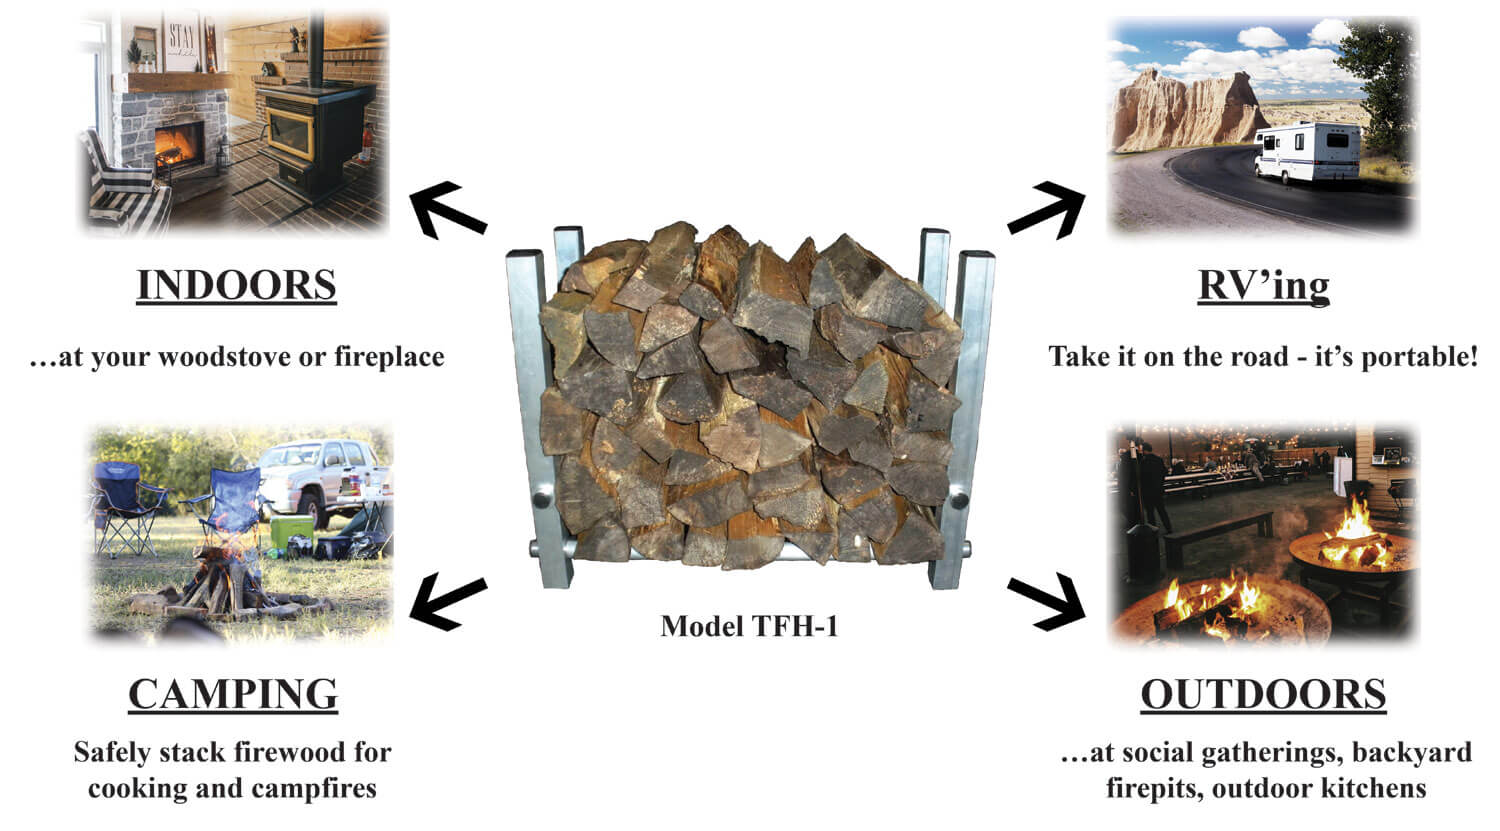 image of firewood holder with wood pointing to images of woodstove, fireplace campfire, firepits and an RV mobile home